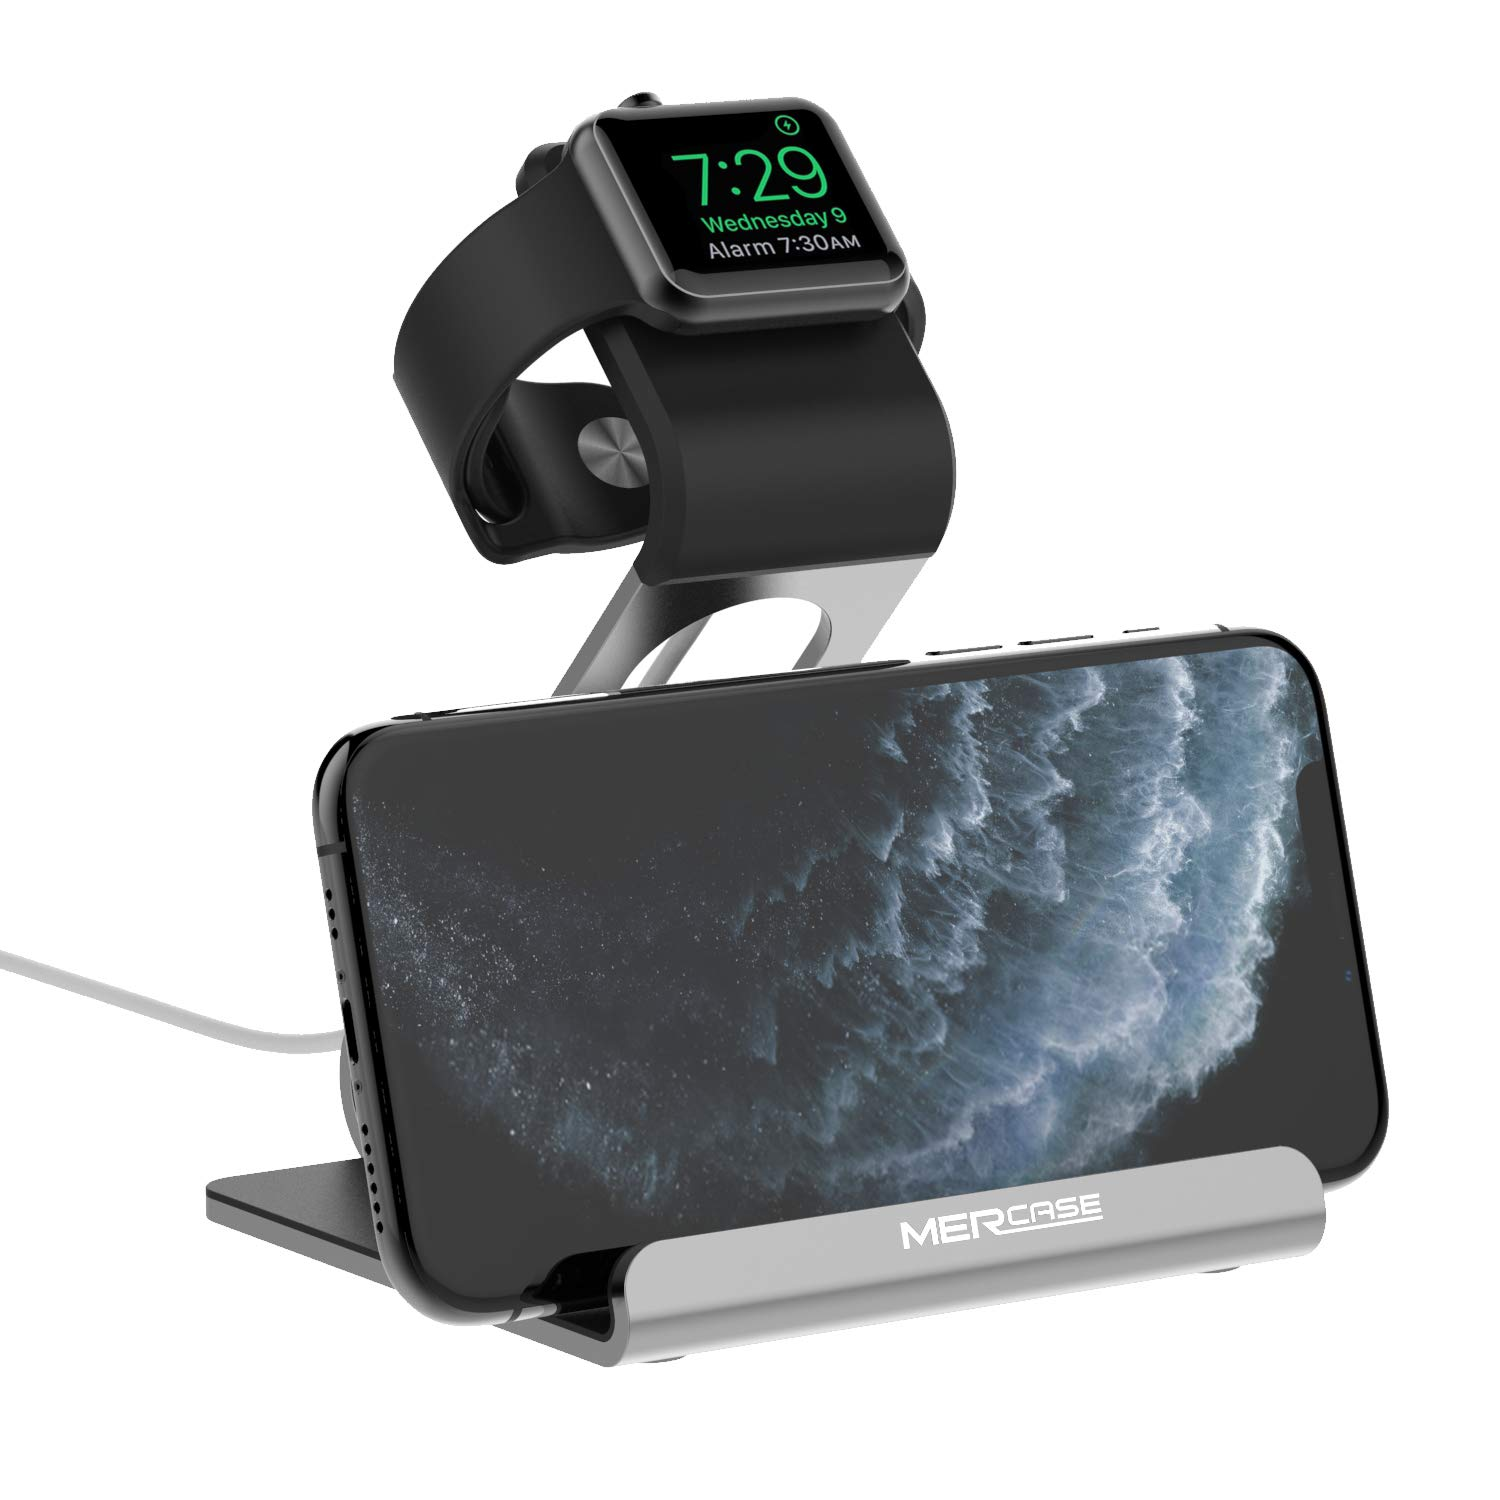 Apple Watch Stand, Mercase Aluminum NightStand iWatch &iPhone Universal Desktop Stand Holder Charging Station for iWatch Series 5/4/3/2/1,iPhone 11/11Pro/11Max/Xs/X Max/XR/X/8/8Plus/7/7Plus-Space Grey by Mercase